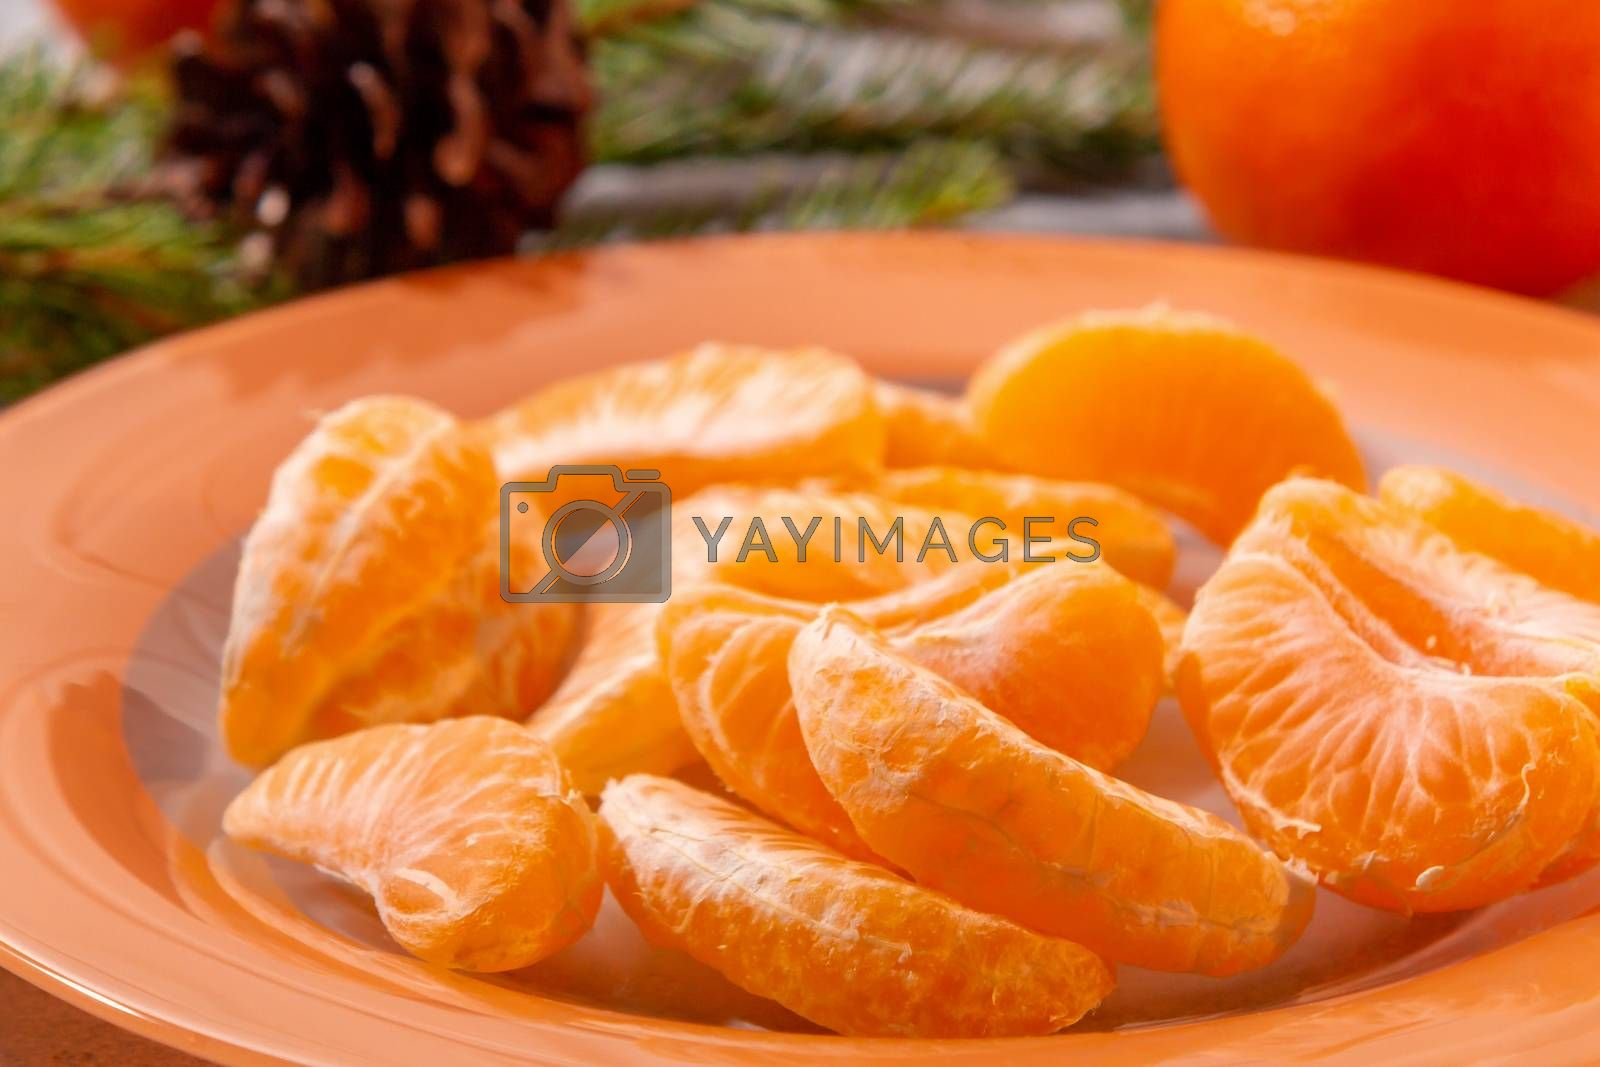 Several peeled tangerine slices on an orange plate with tree branches and a cone-a traditional Christmas and new year's composition in Russia by galsand